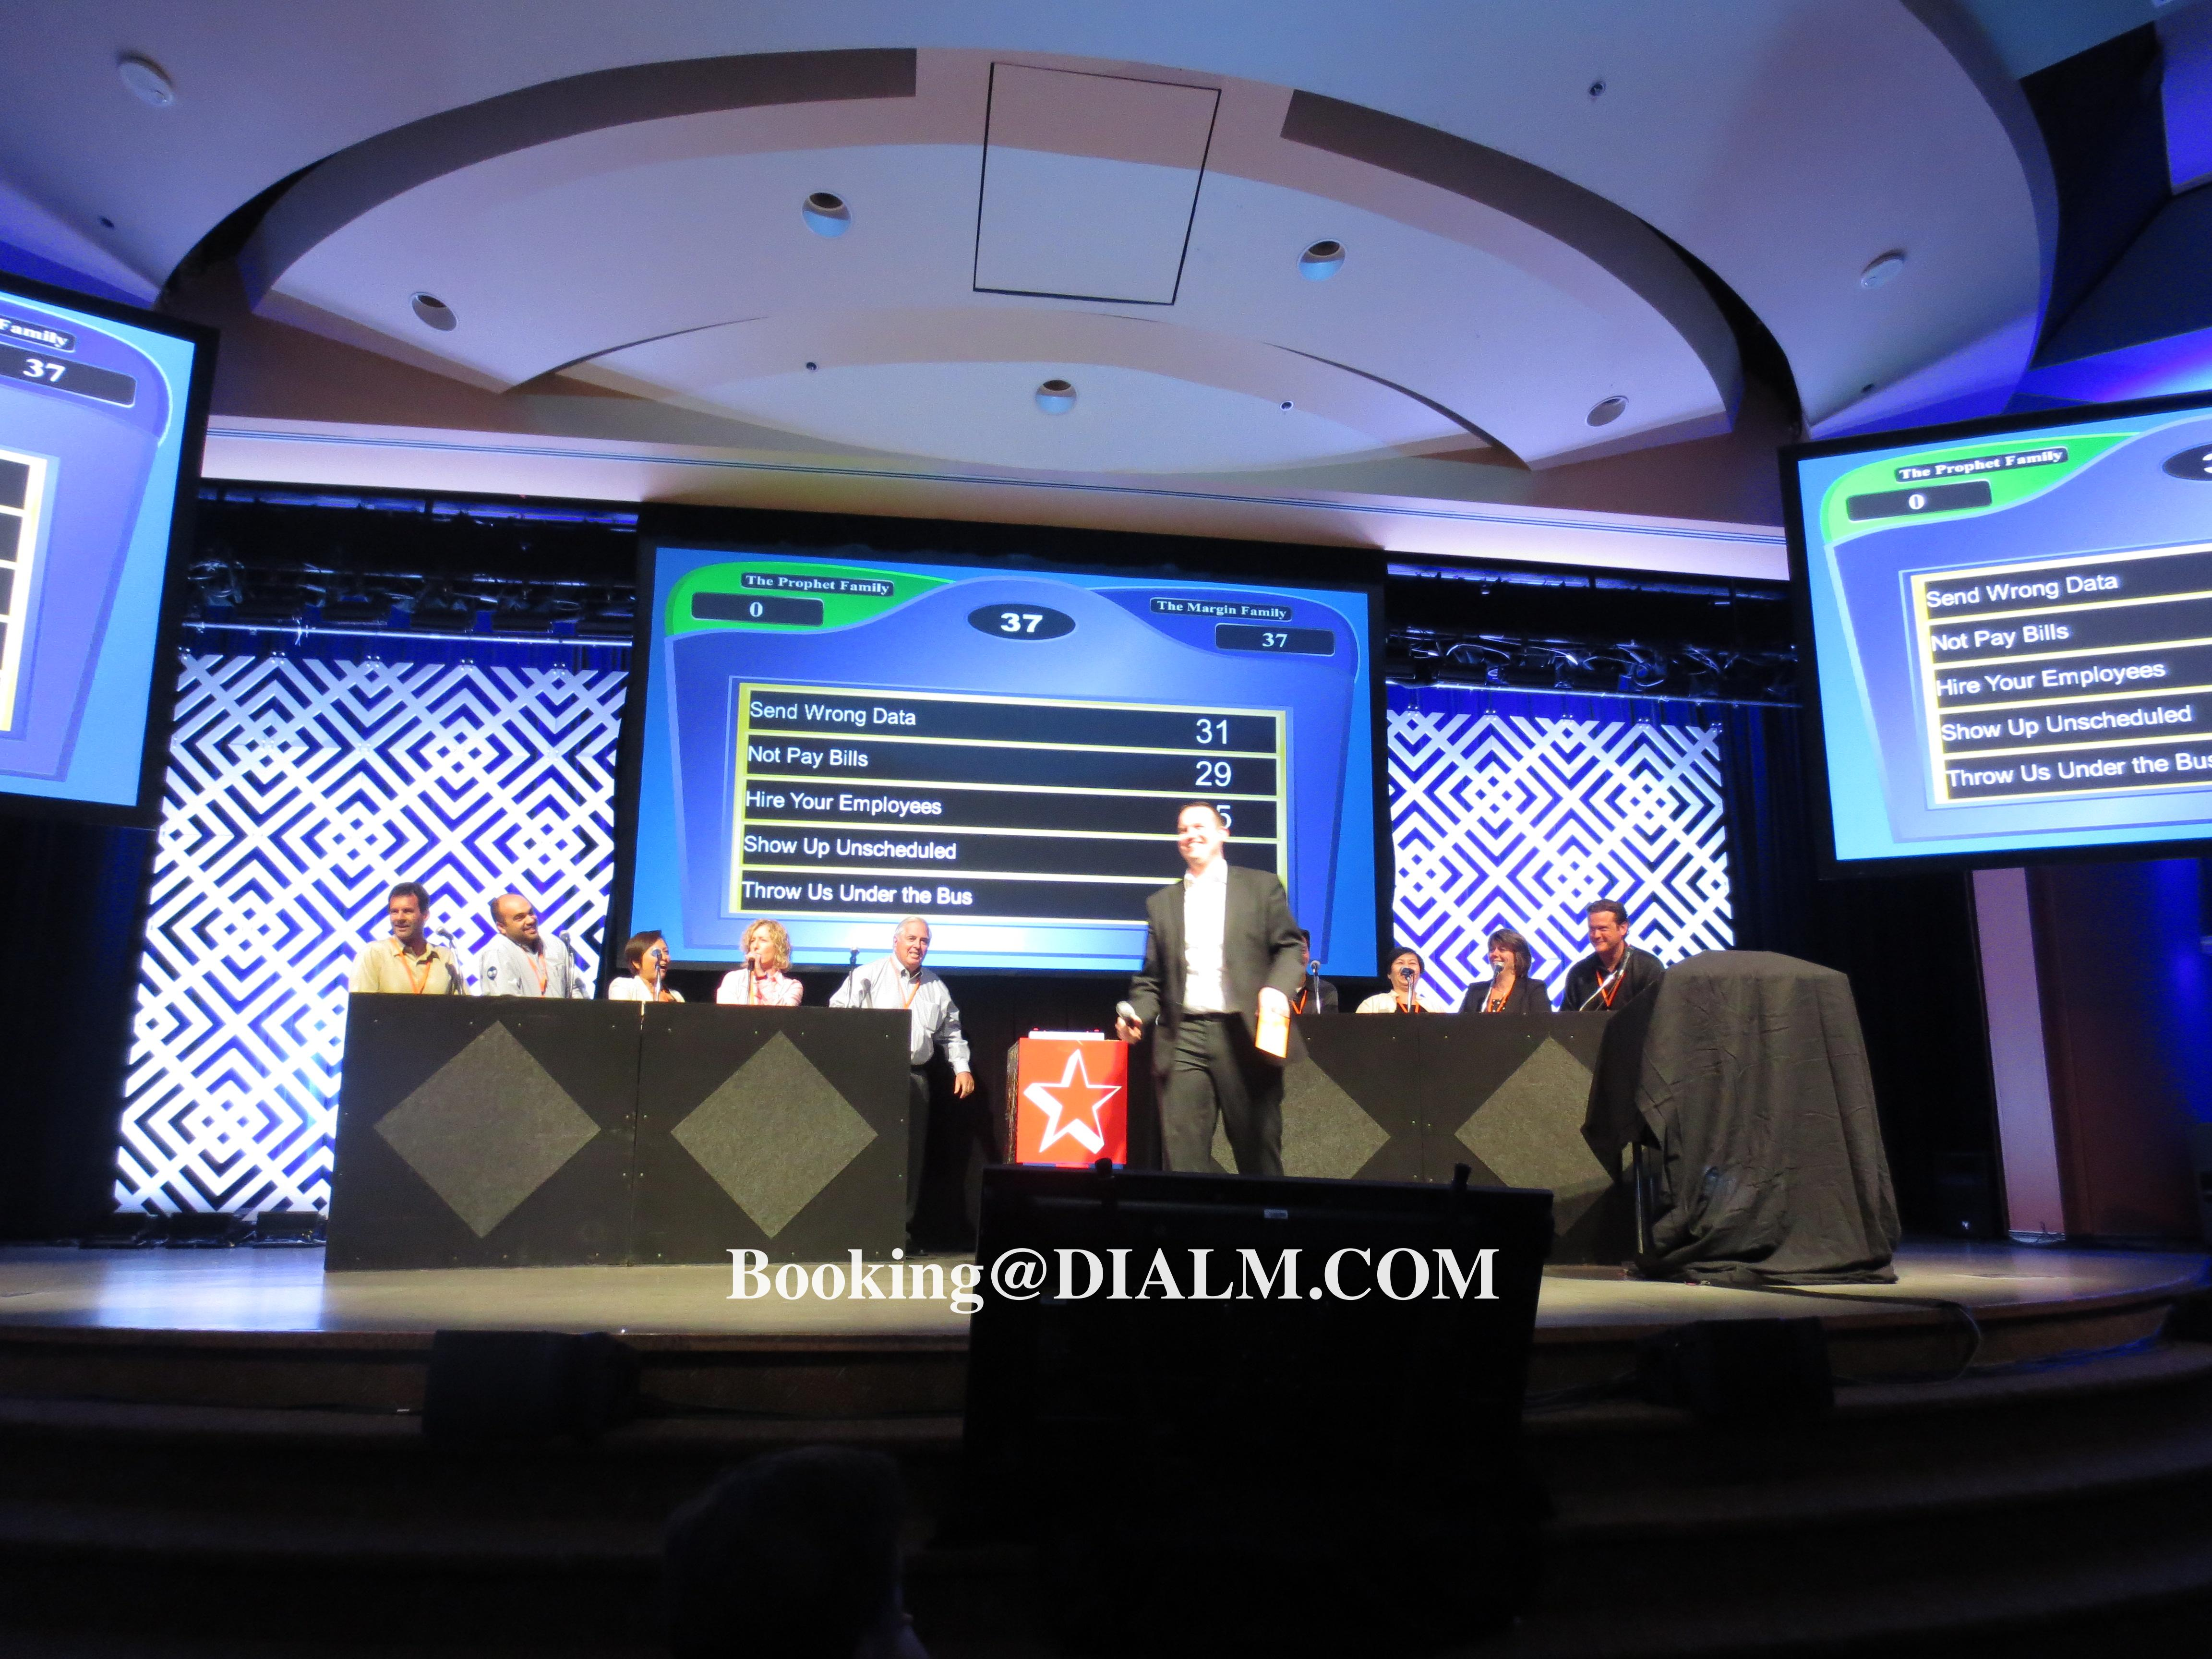 Family Feud Game Show #DIALM #Teambuilding #LosAngeles #EventPlanner